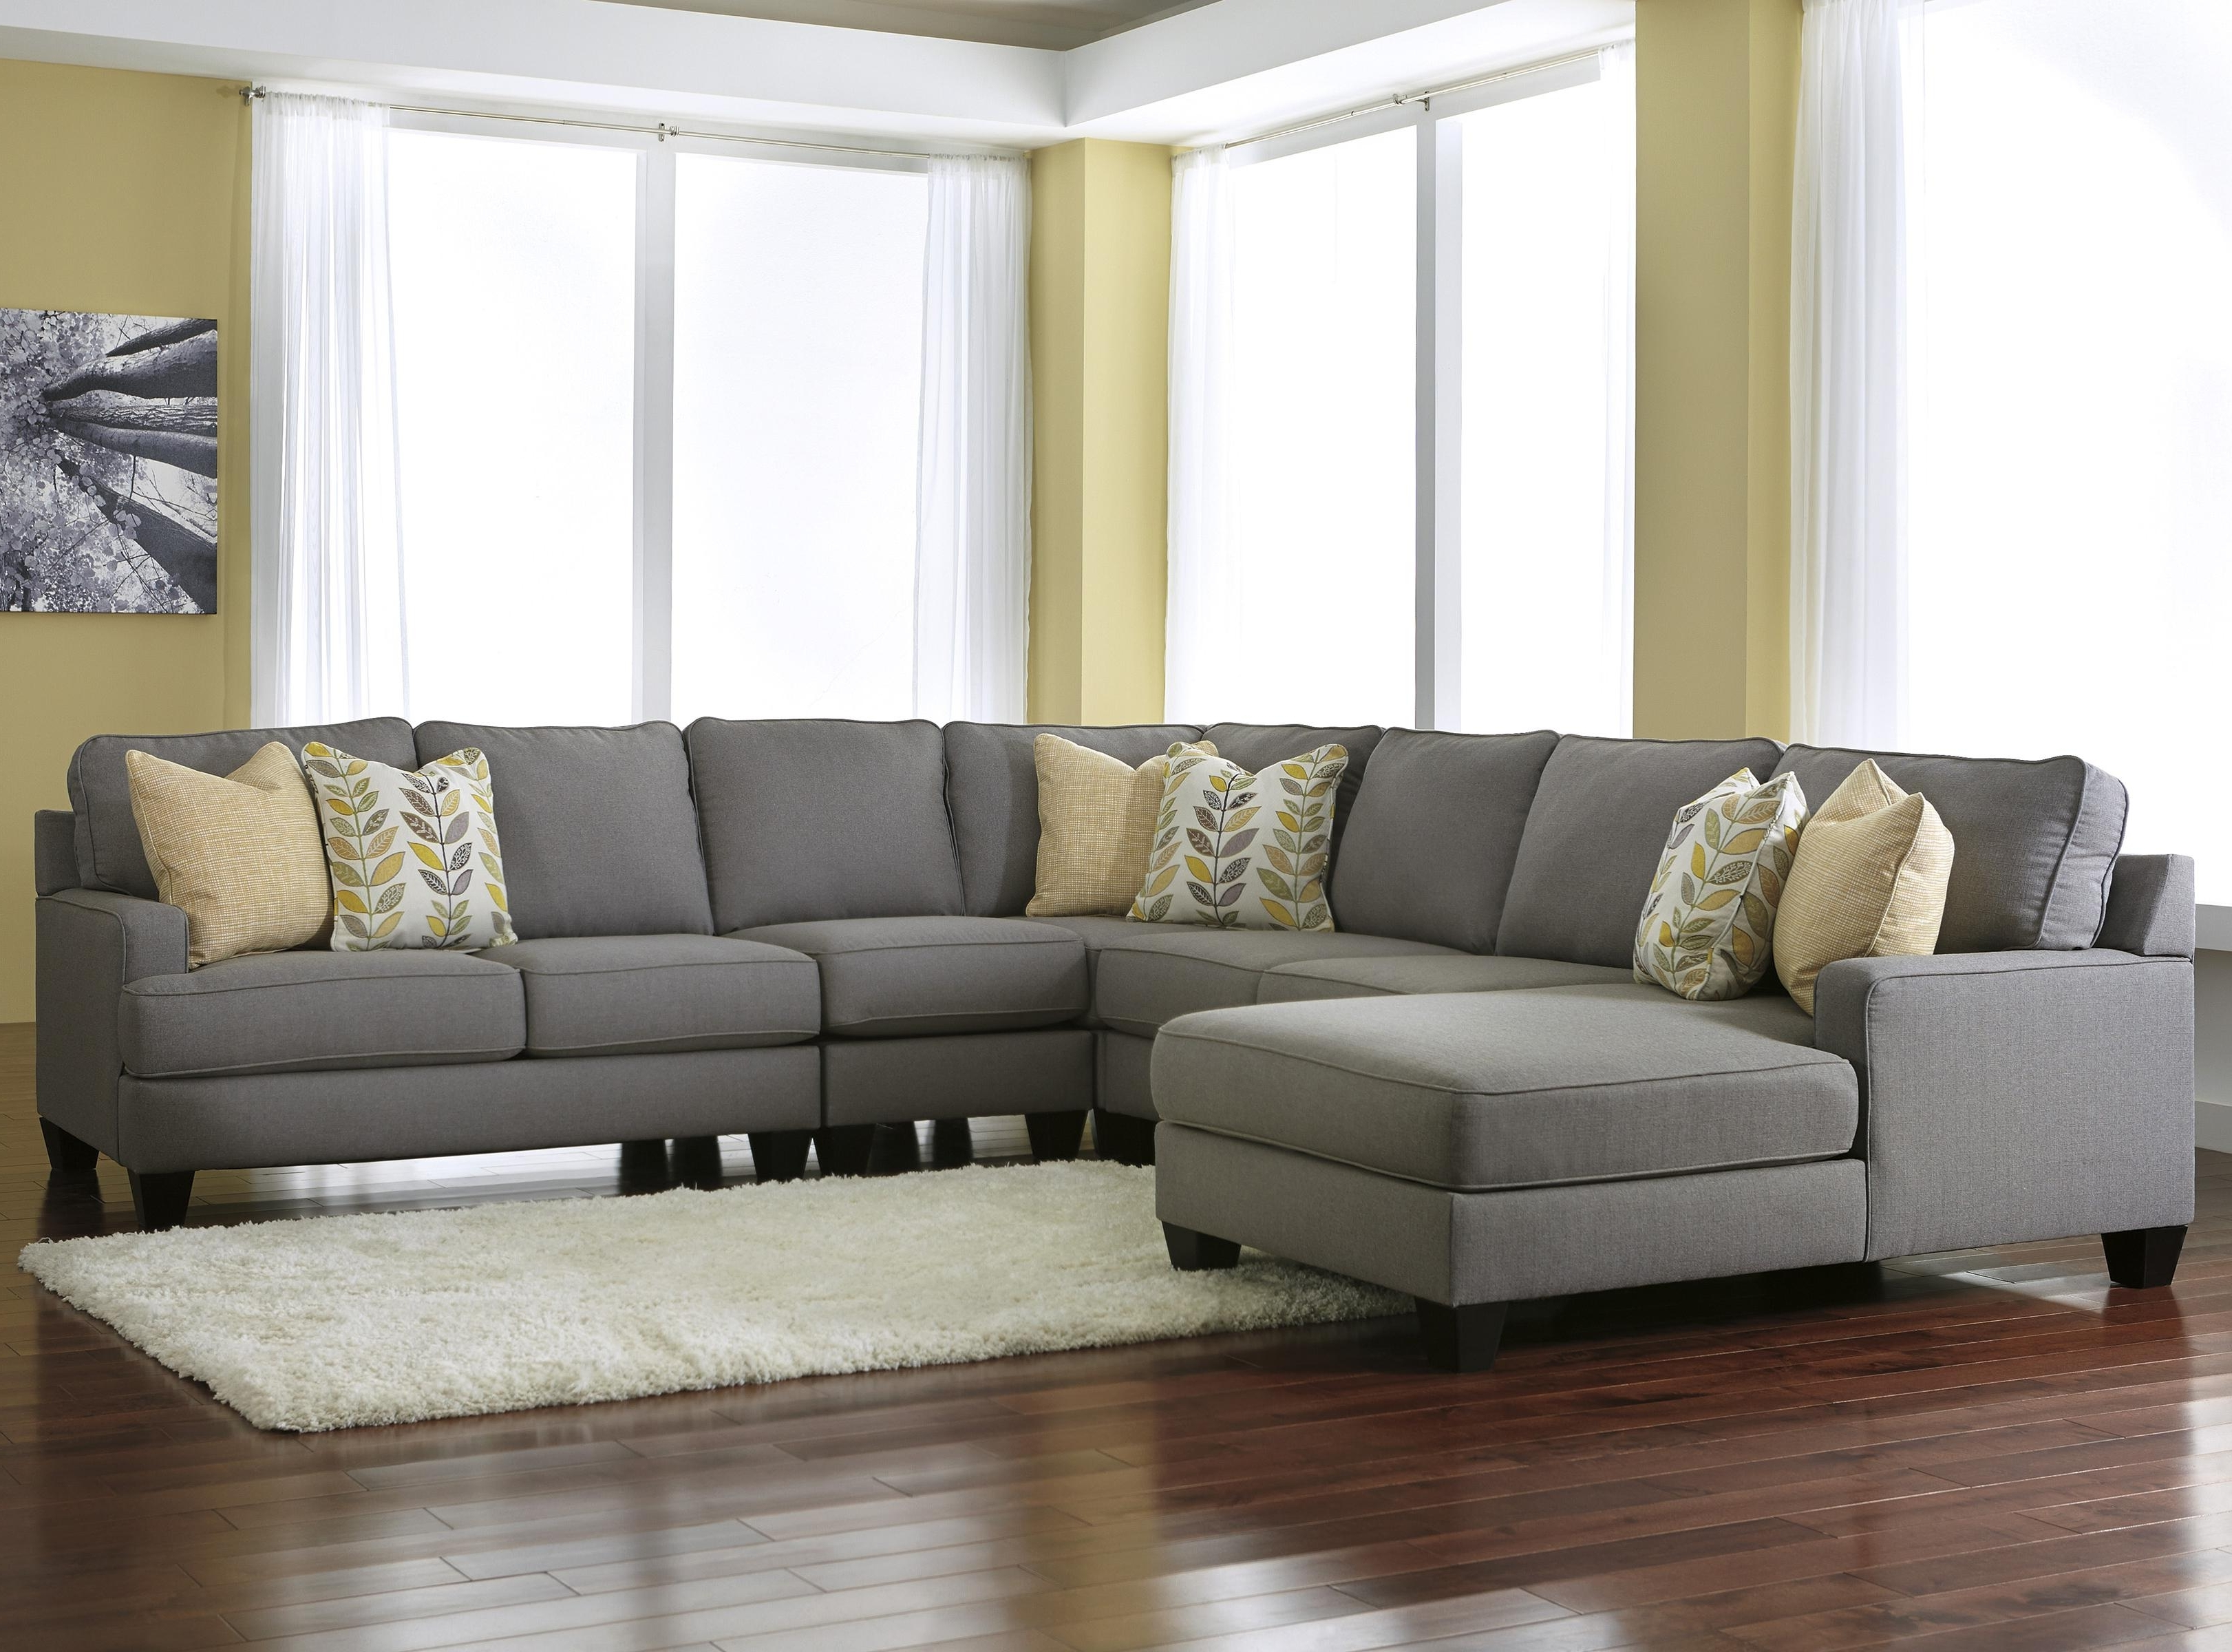 2017 Signature Designashley Chamberly – Alloy Modern 5 Piece In Home Furniture Sectional Sofas (View 2 of 15)